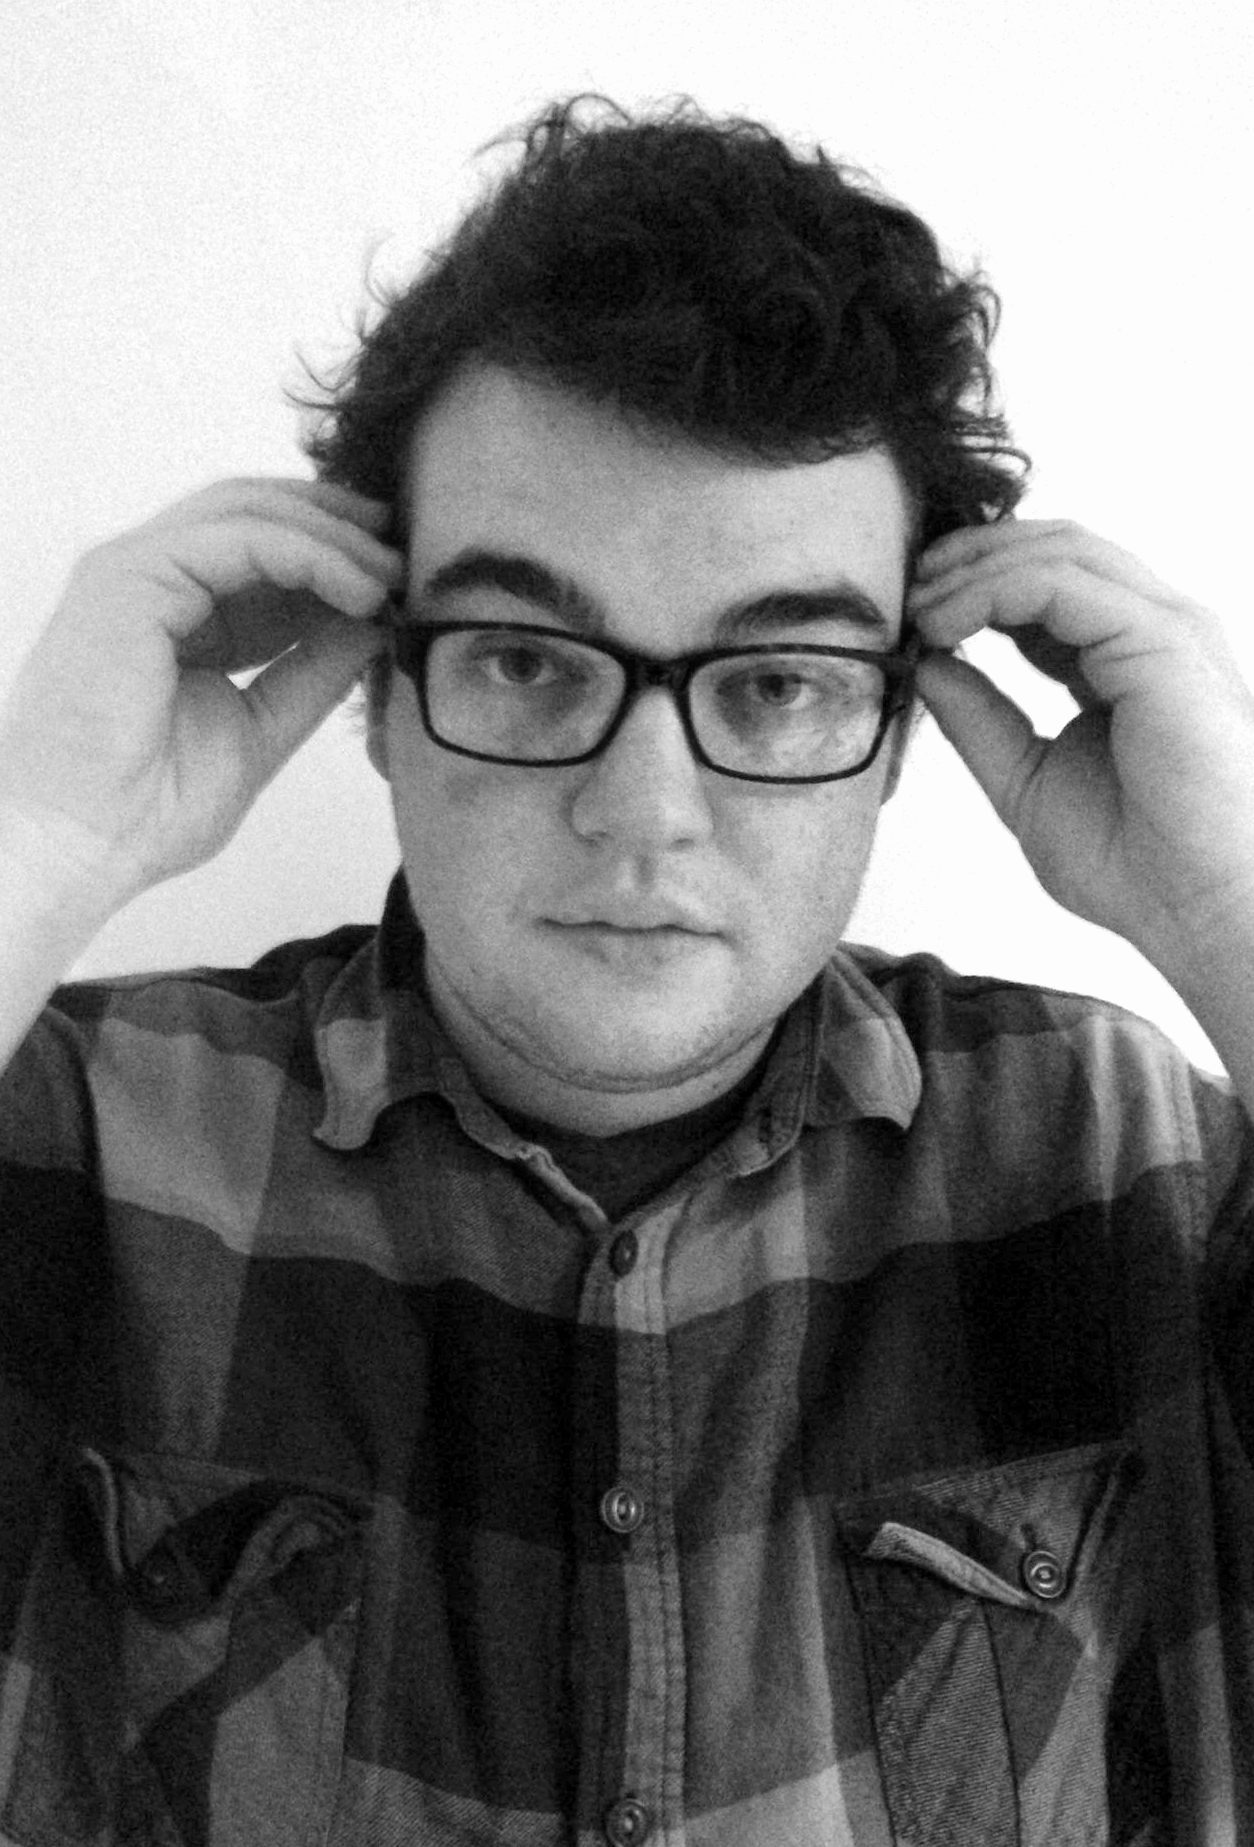 Noah Lashly grew up in Kim Maxwell's writing, performance and storytelling class. Now working on his standup material & several plays in his senior year at Hendrix College, he is beyond excited to have his piece featured on The Townies Podcast.